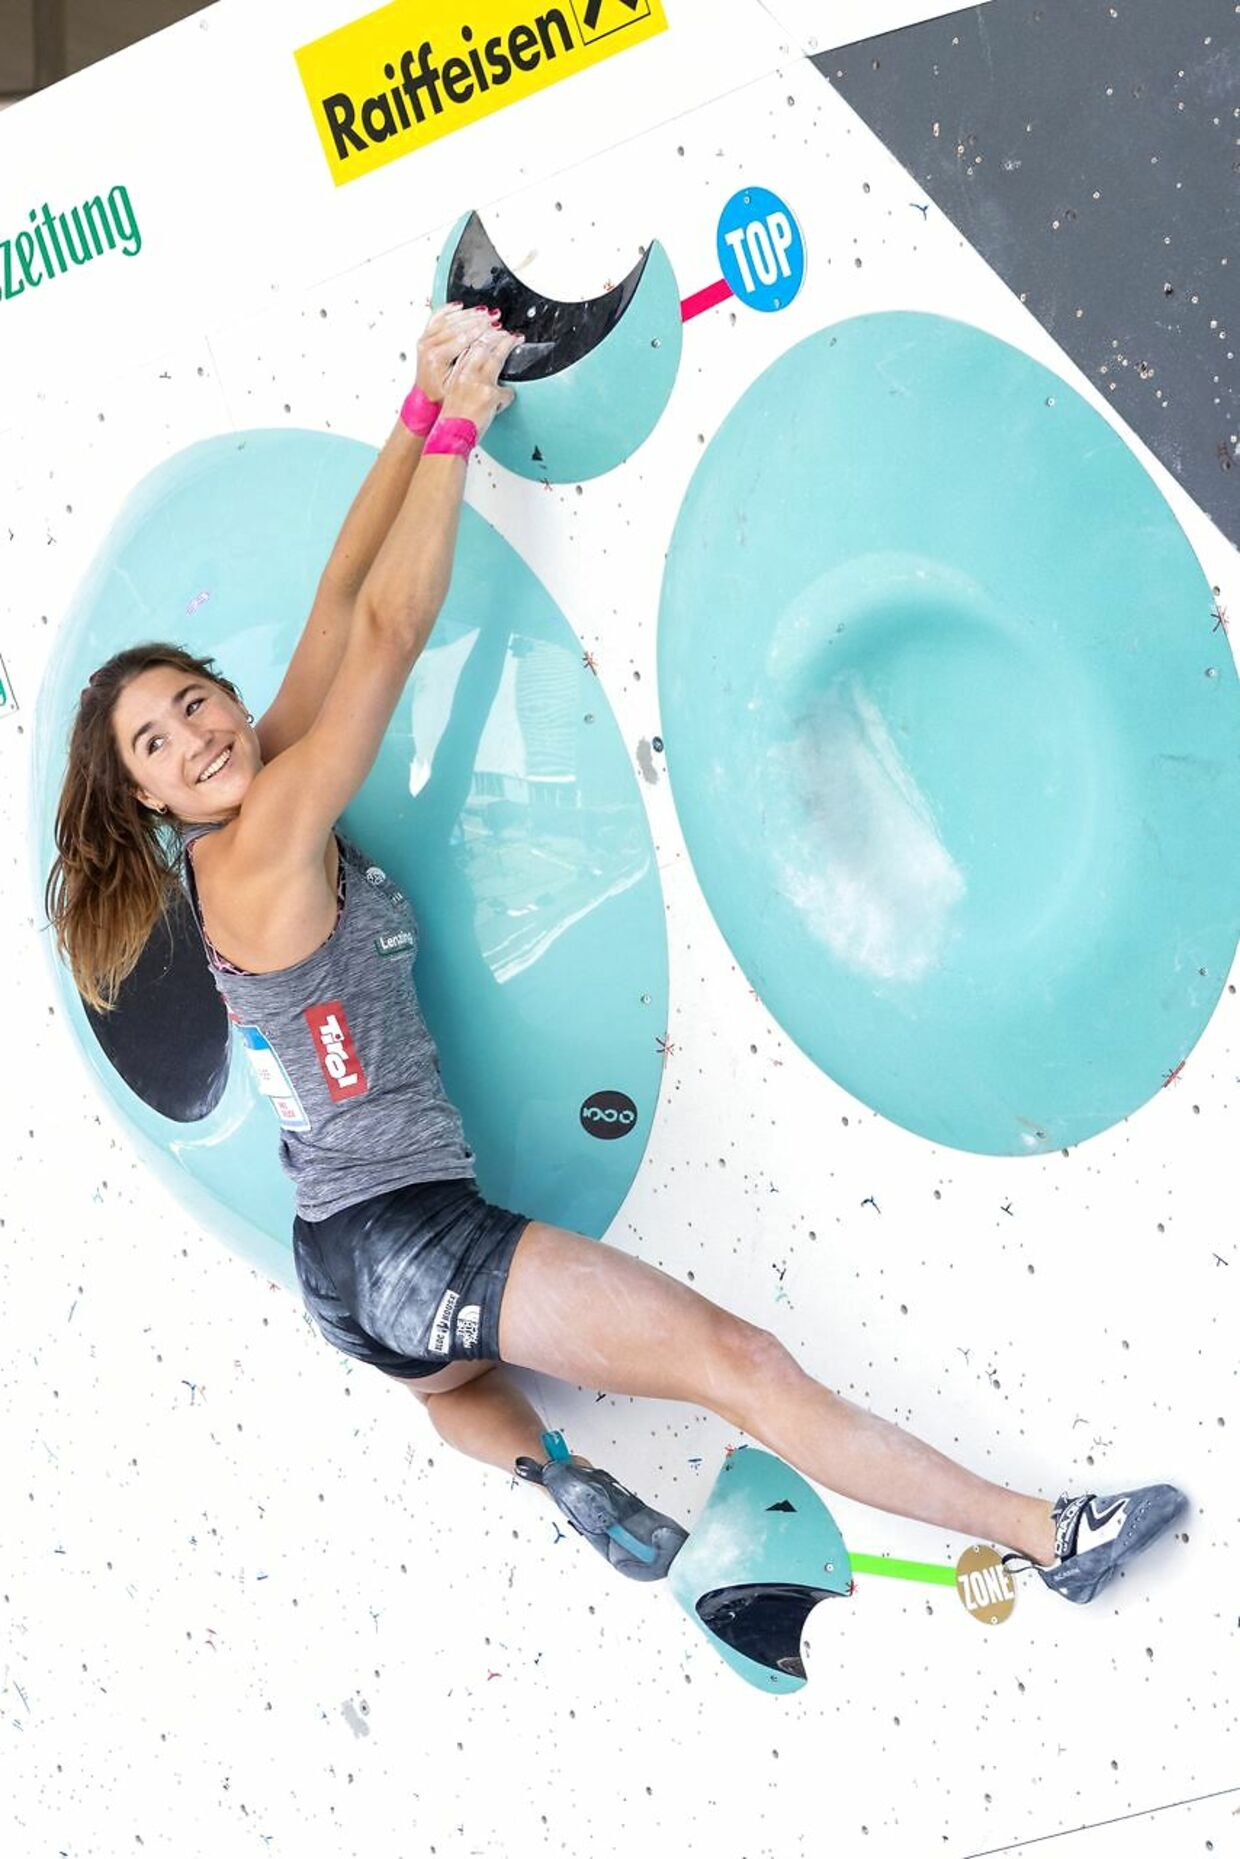 Austria's Johanna Färber competes in the women's Boulder competition semi-final of the IFSC Climbing World Cup in Innsbruck, Austria, on June 26, 2021. (Photo by Johann GRODER / various sources / AFP) / Austria OUT